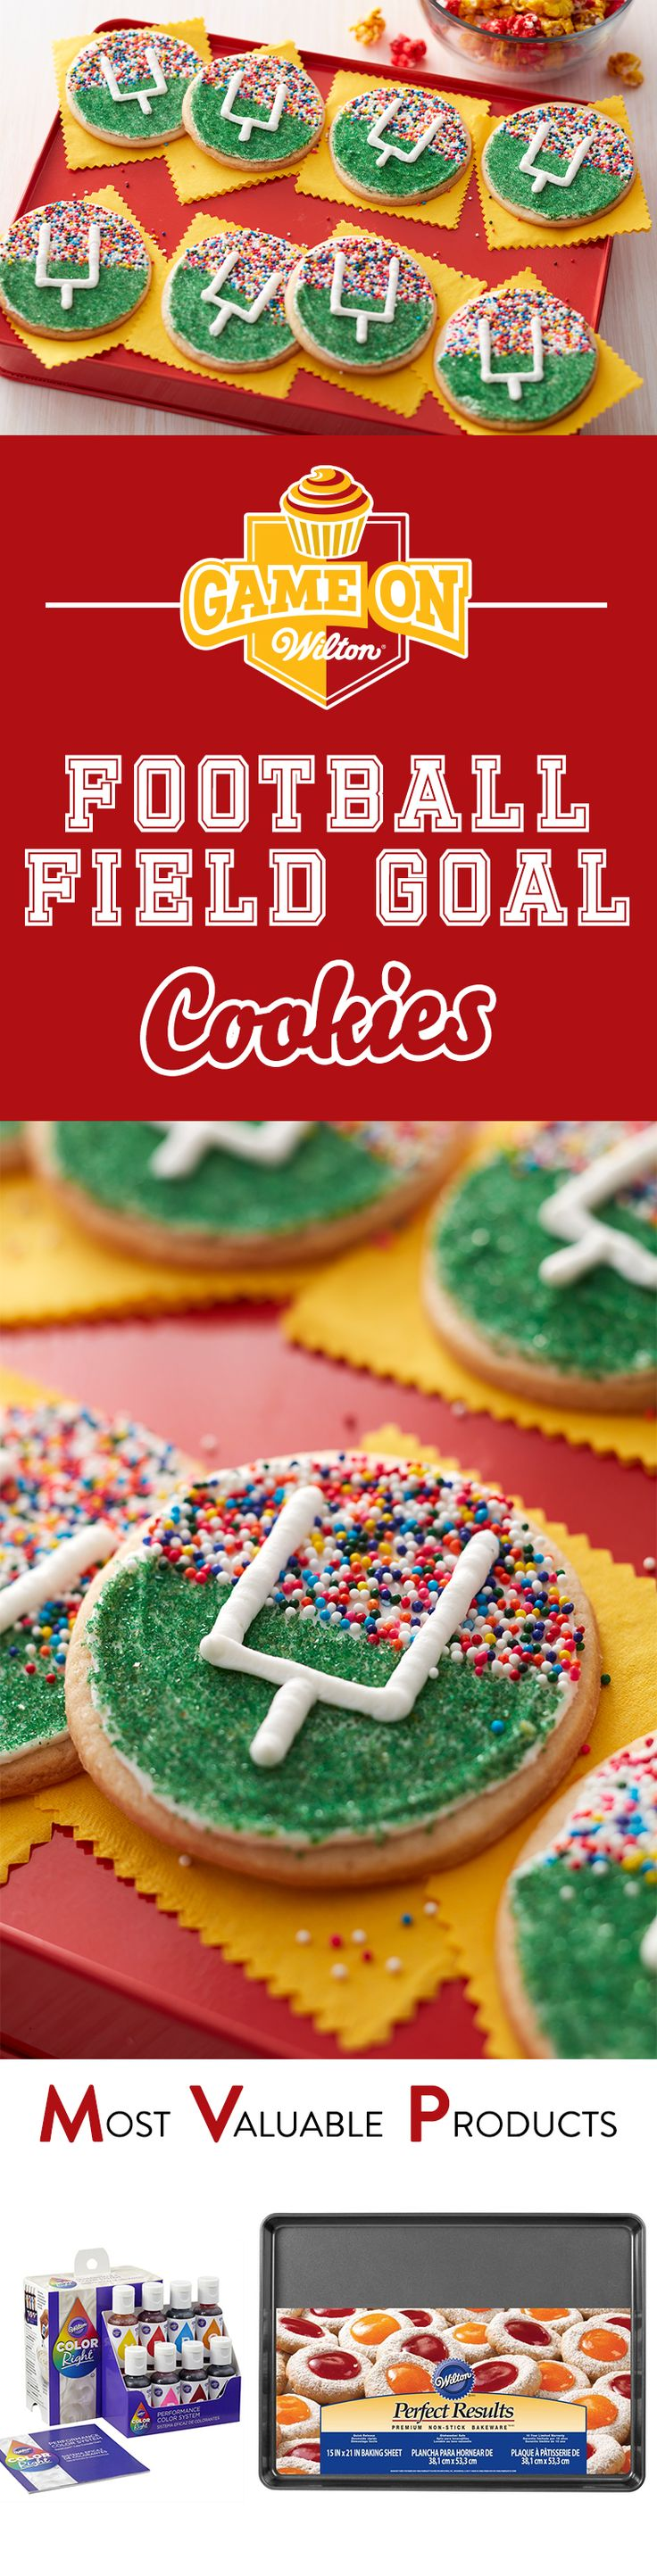 Score big with these Football Field Goal Cookies for your home team as you all watch the big game! Quick and easy to make using your favorite roll out cookie dough and some colorful Wilton Sprinkles. These goal post cookies are great for youth football treats, game day snack or anytime you want a sweet and colorful treat while you cheer on your favorite team!